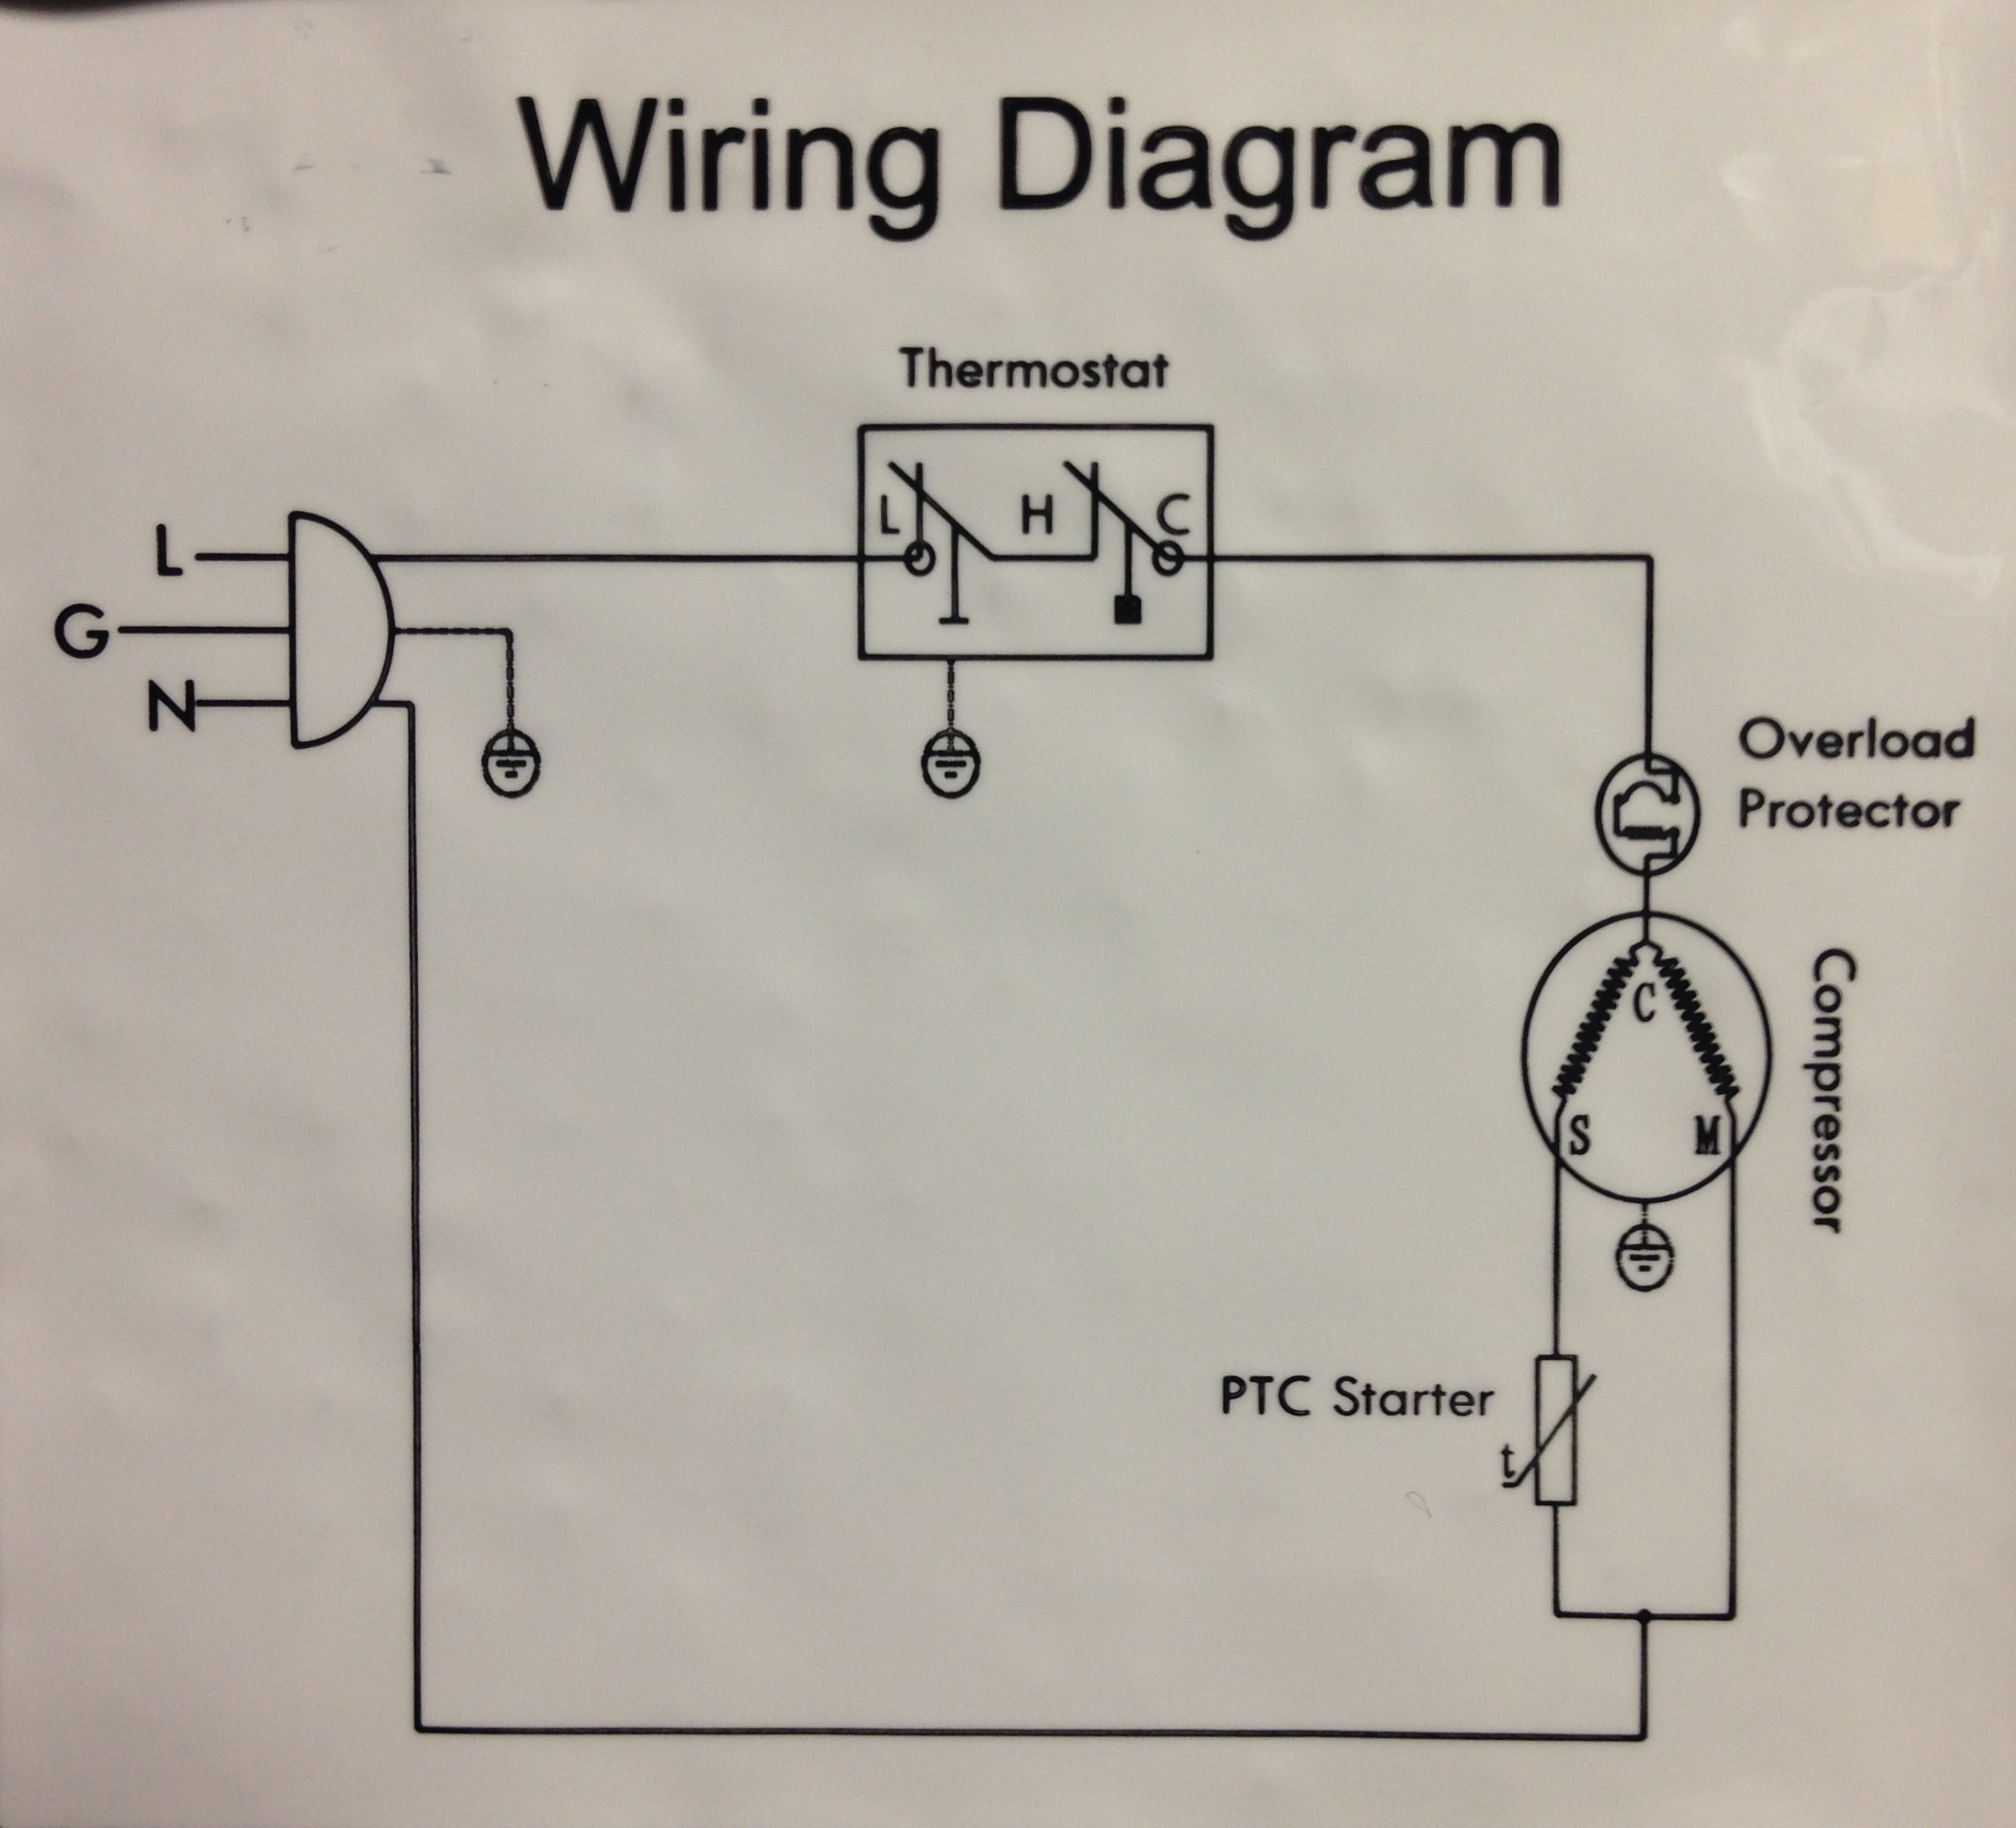 hight resolution of ptc wiring diagram data wiring diagram schematic ct wiring diagram 20 ptc wiring diagram pictures and